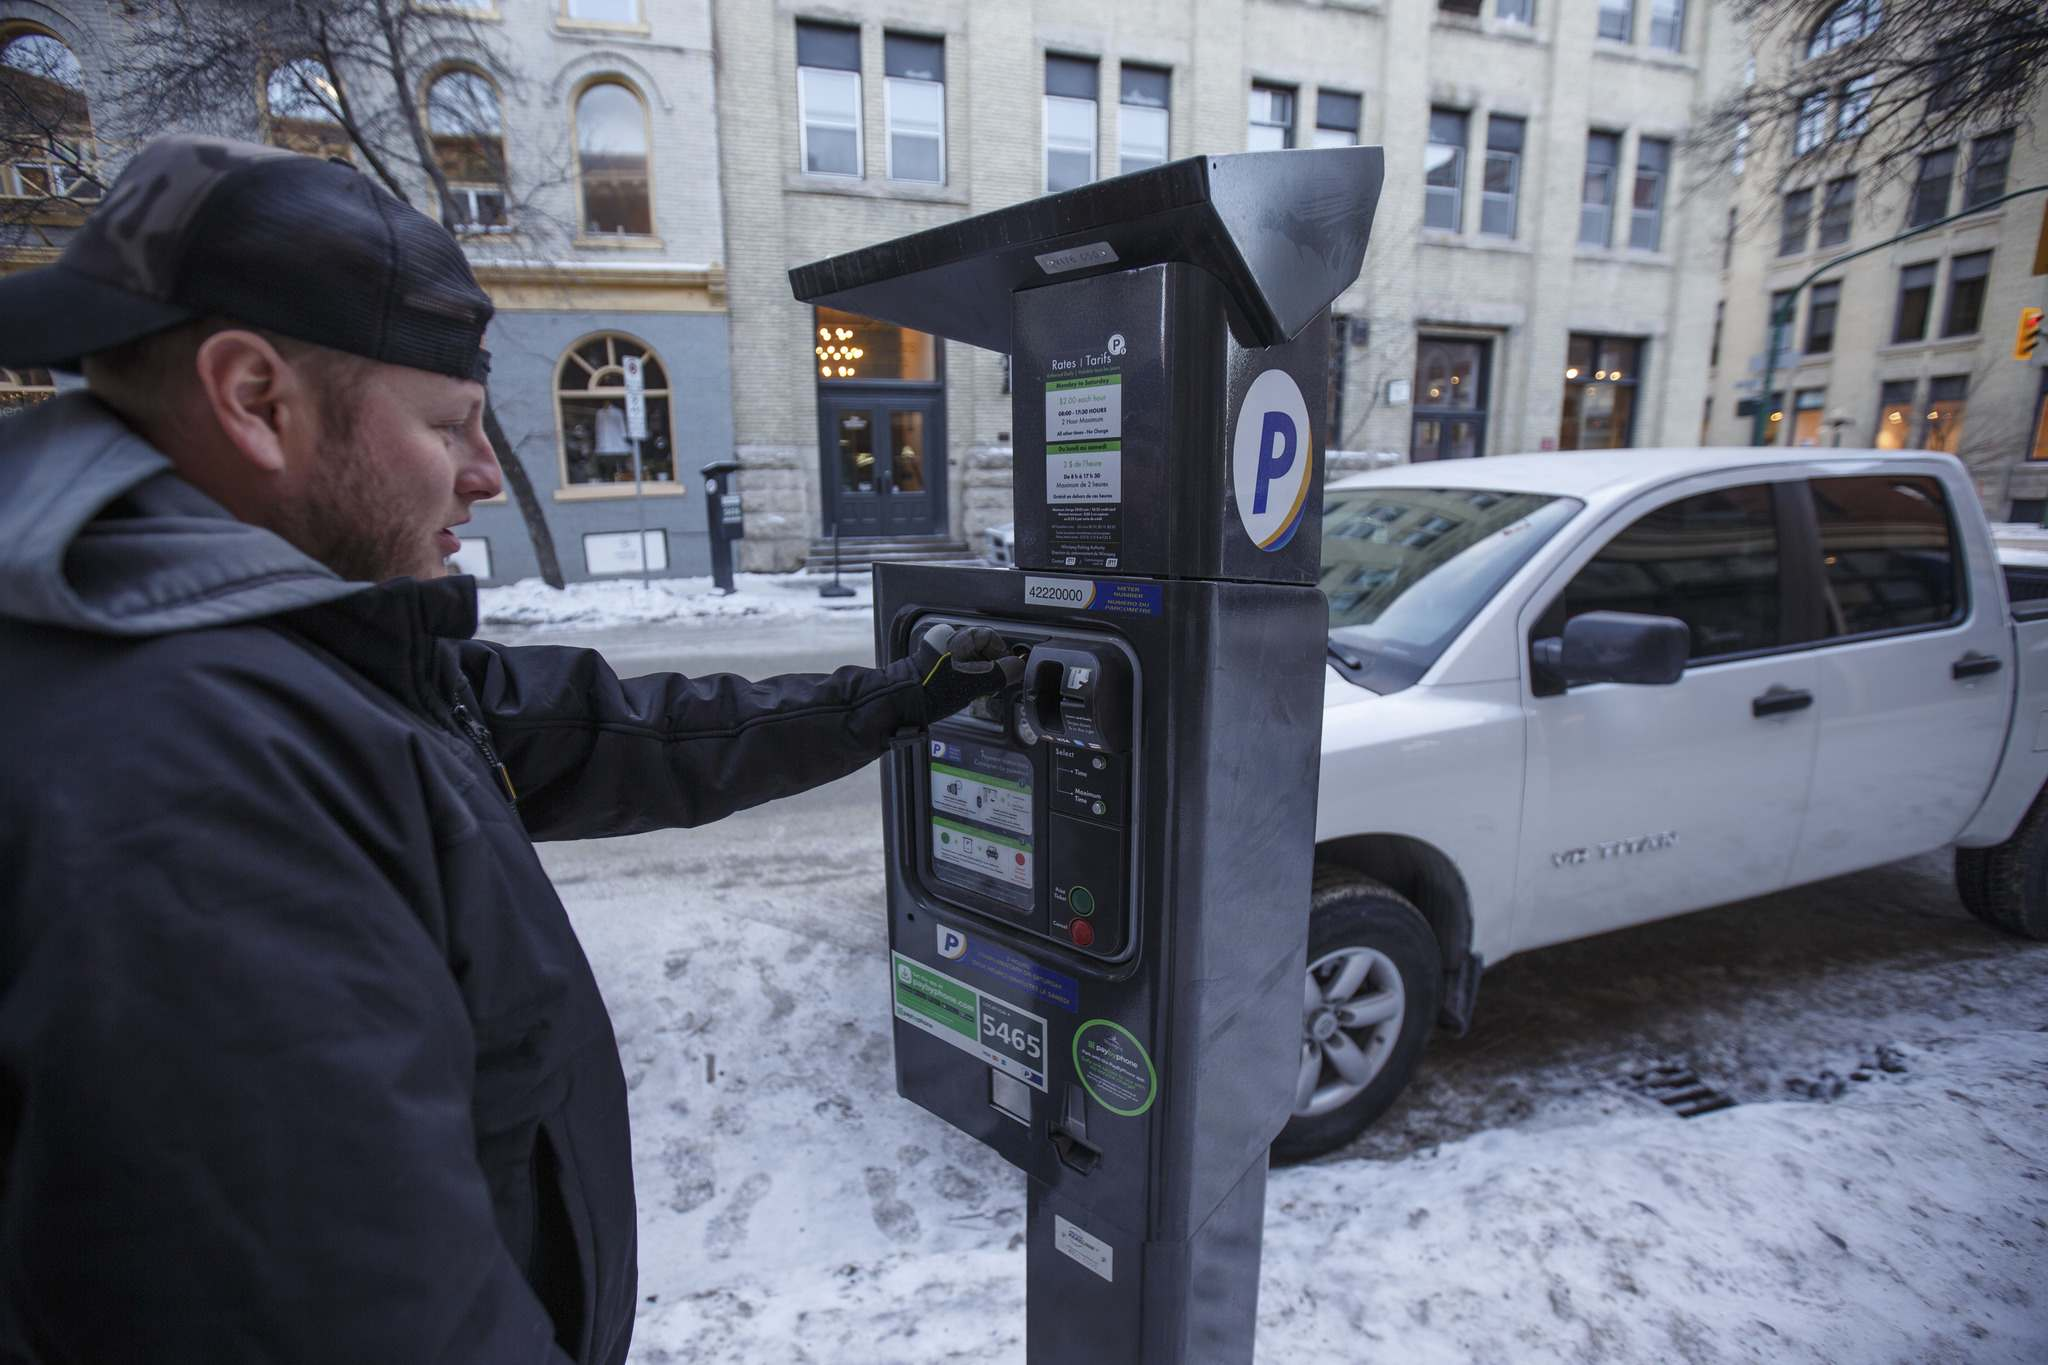 <p>Michael Matsyk plugs a meter with change Tuesday afternoon in the Exchange District. Some parking meters in the Exchange area have new stickers on them explaining the hourly rates. The stickers offering two free hours on Saturdays are still there as well.</p>